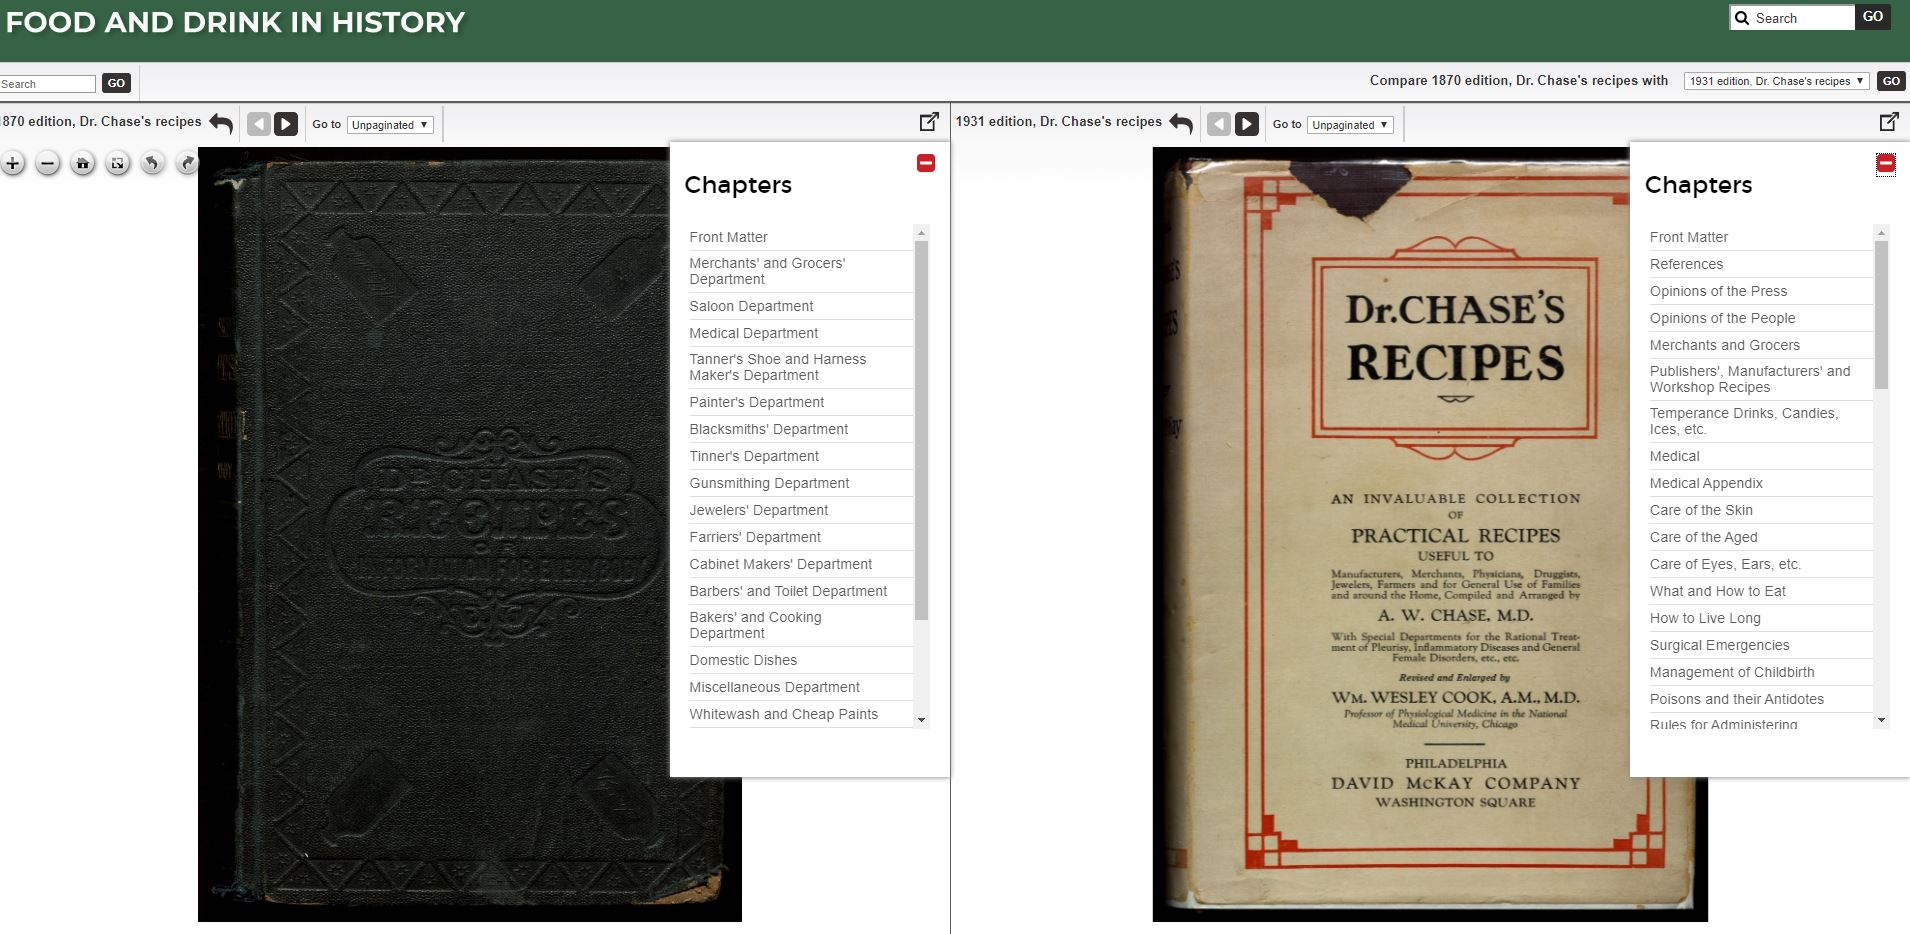 A multiple edition cookbook in the split-screen image viewer